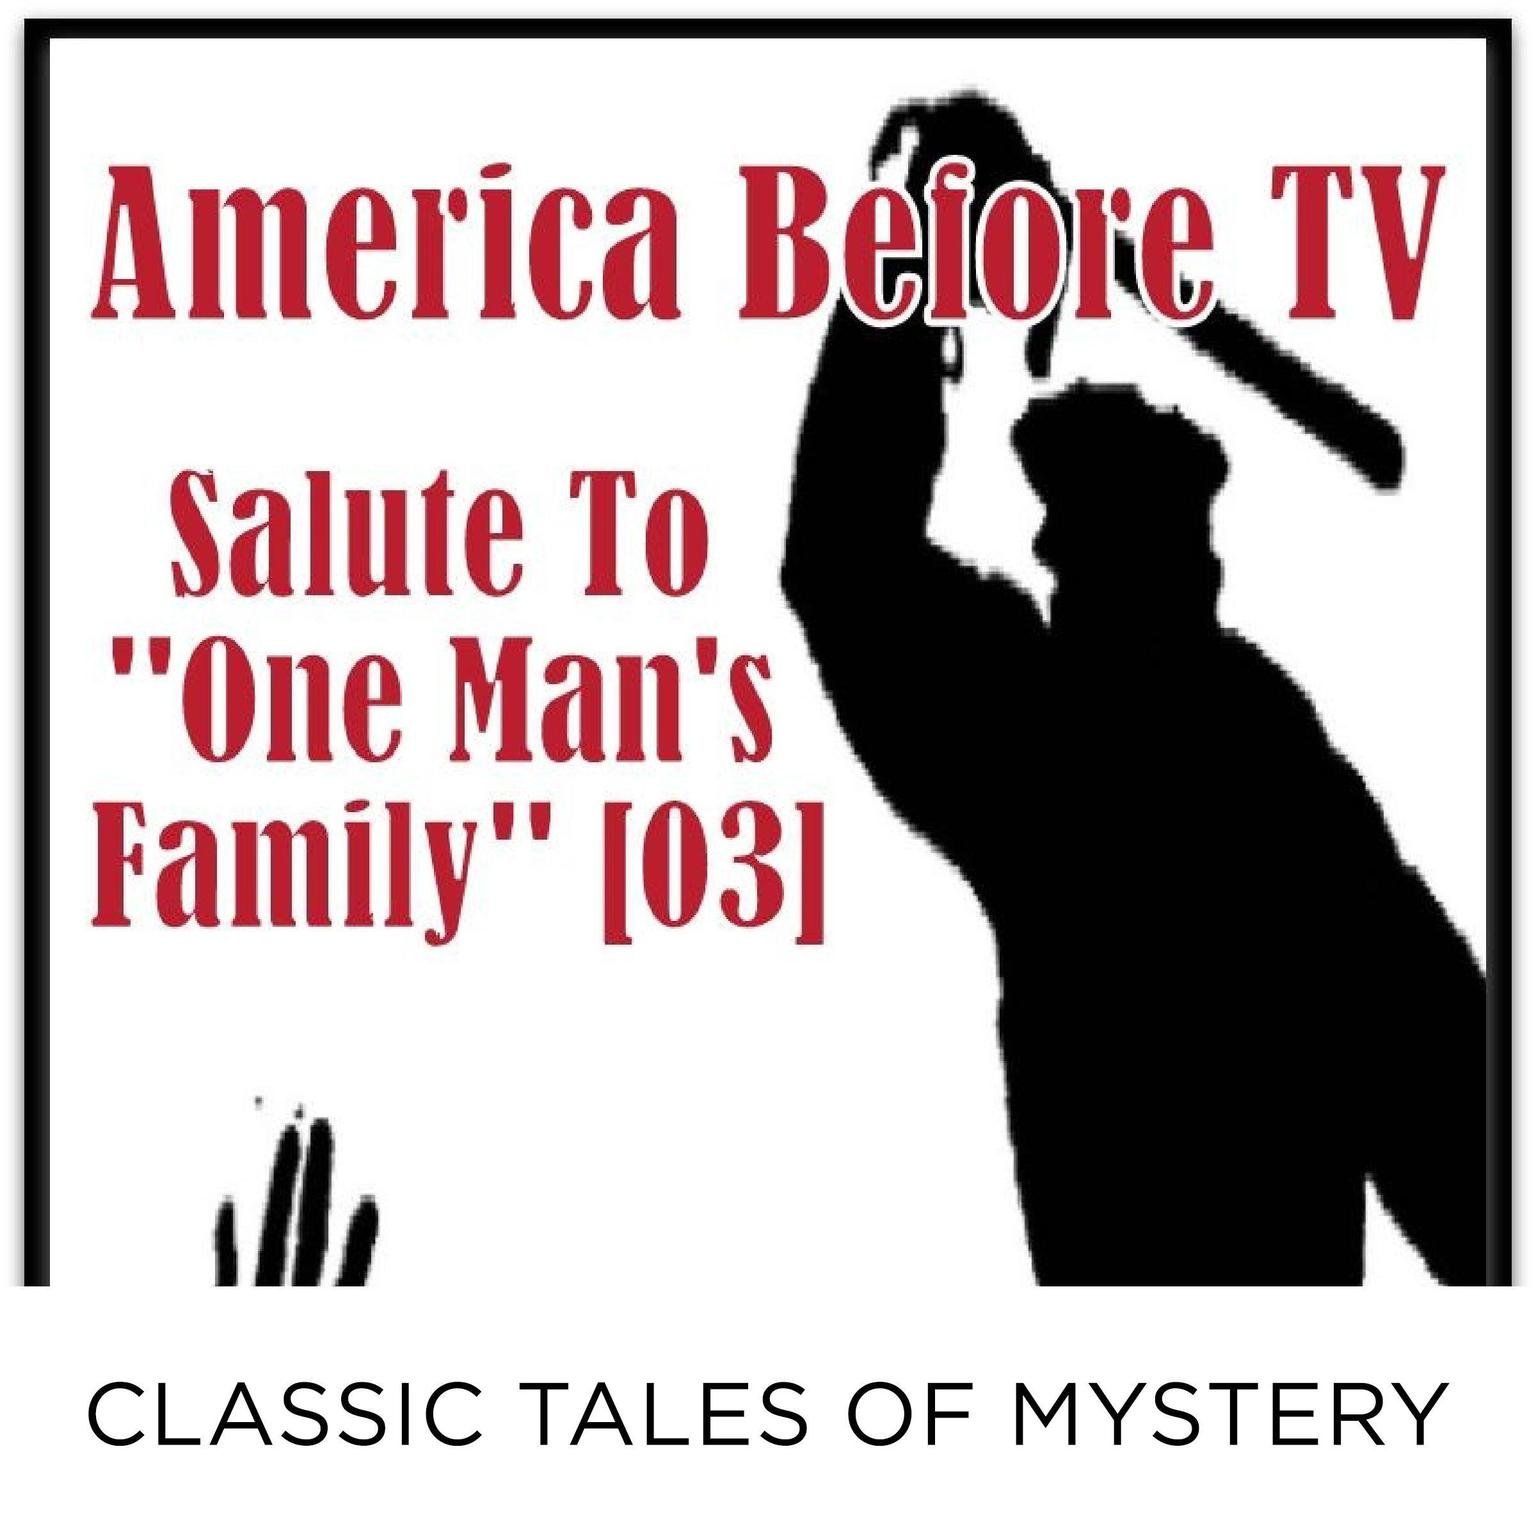 Printable America Before TV - Salute To ''One Man's Family'' [03] Audiobook Cover Art